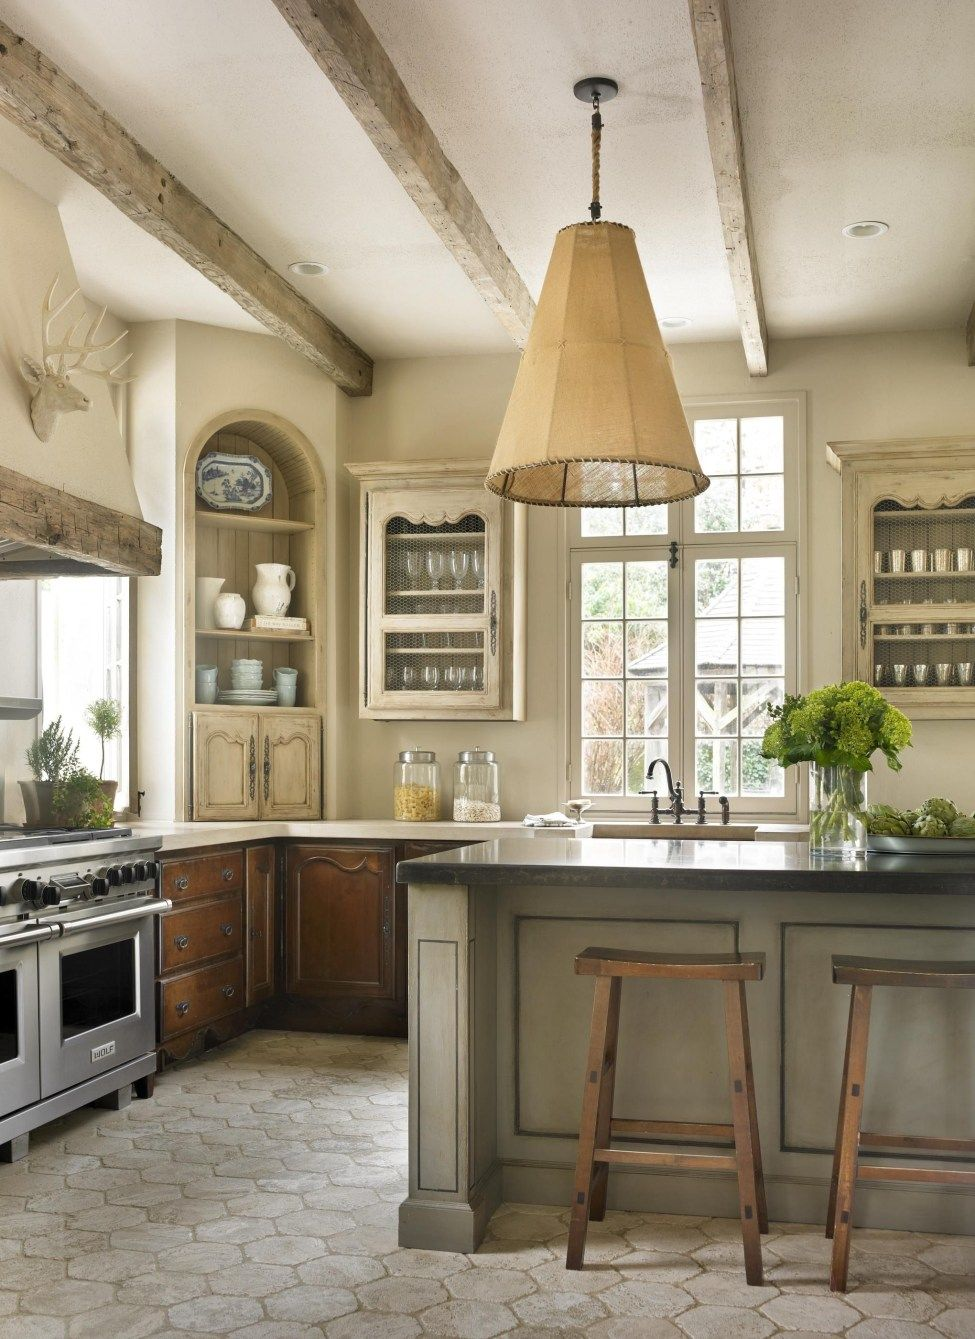 Modern French Country Kitchen 88 Cool Modern French Country Kitchen Design Ideas Kitchen